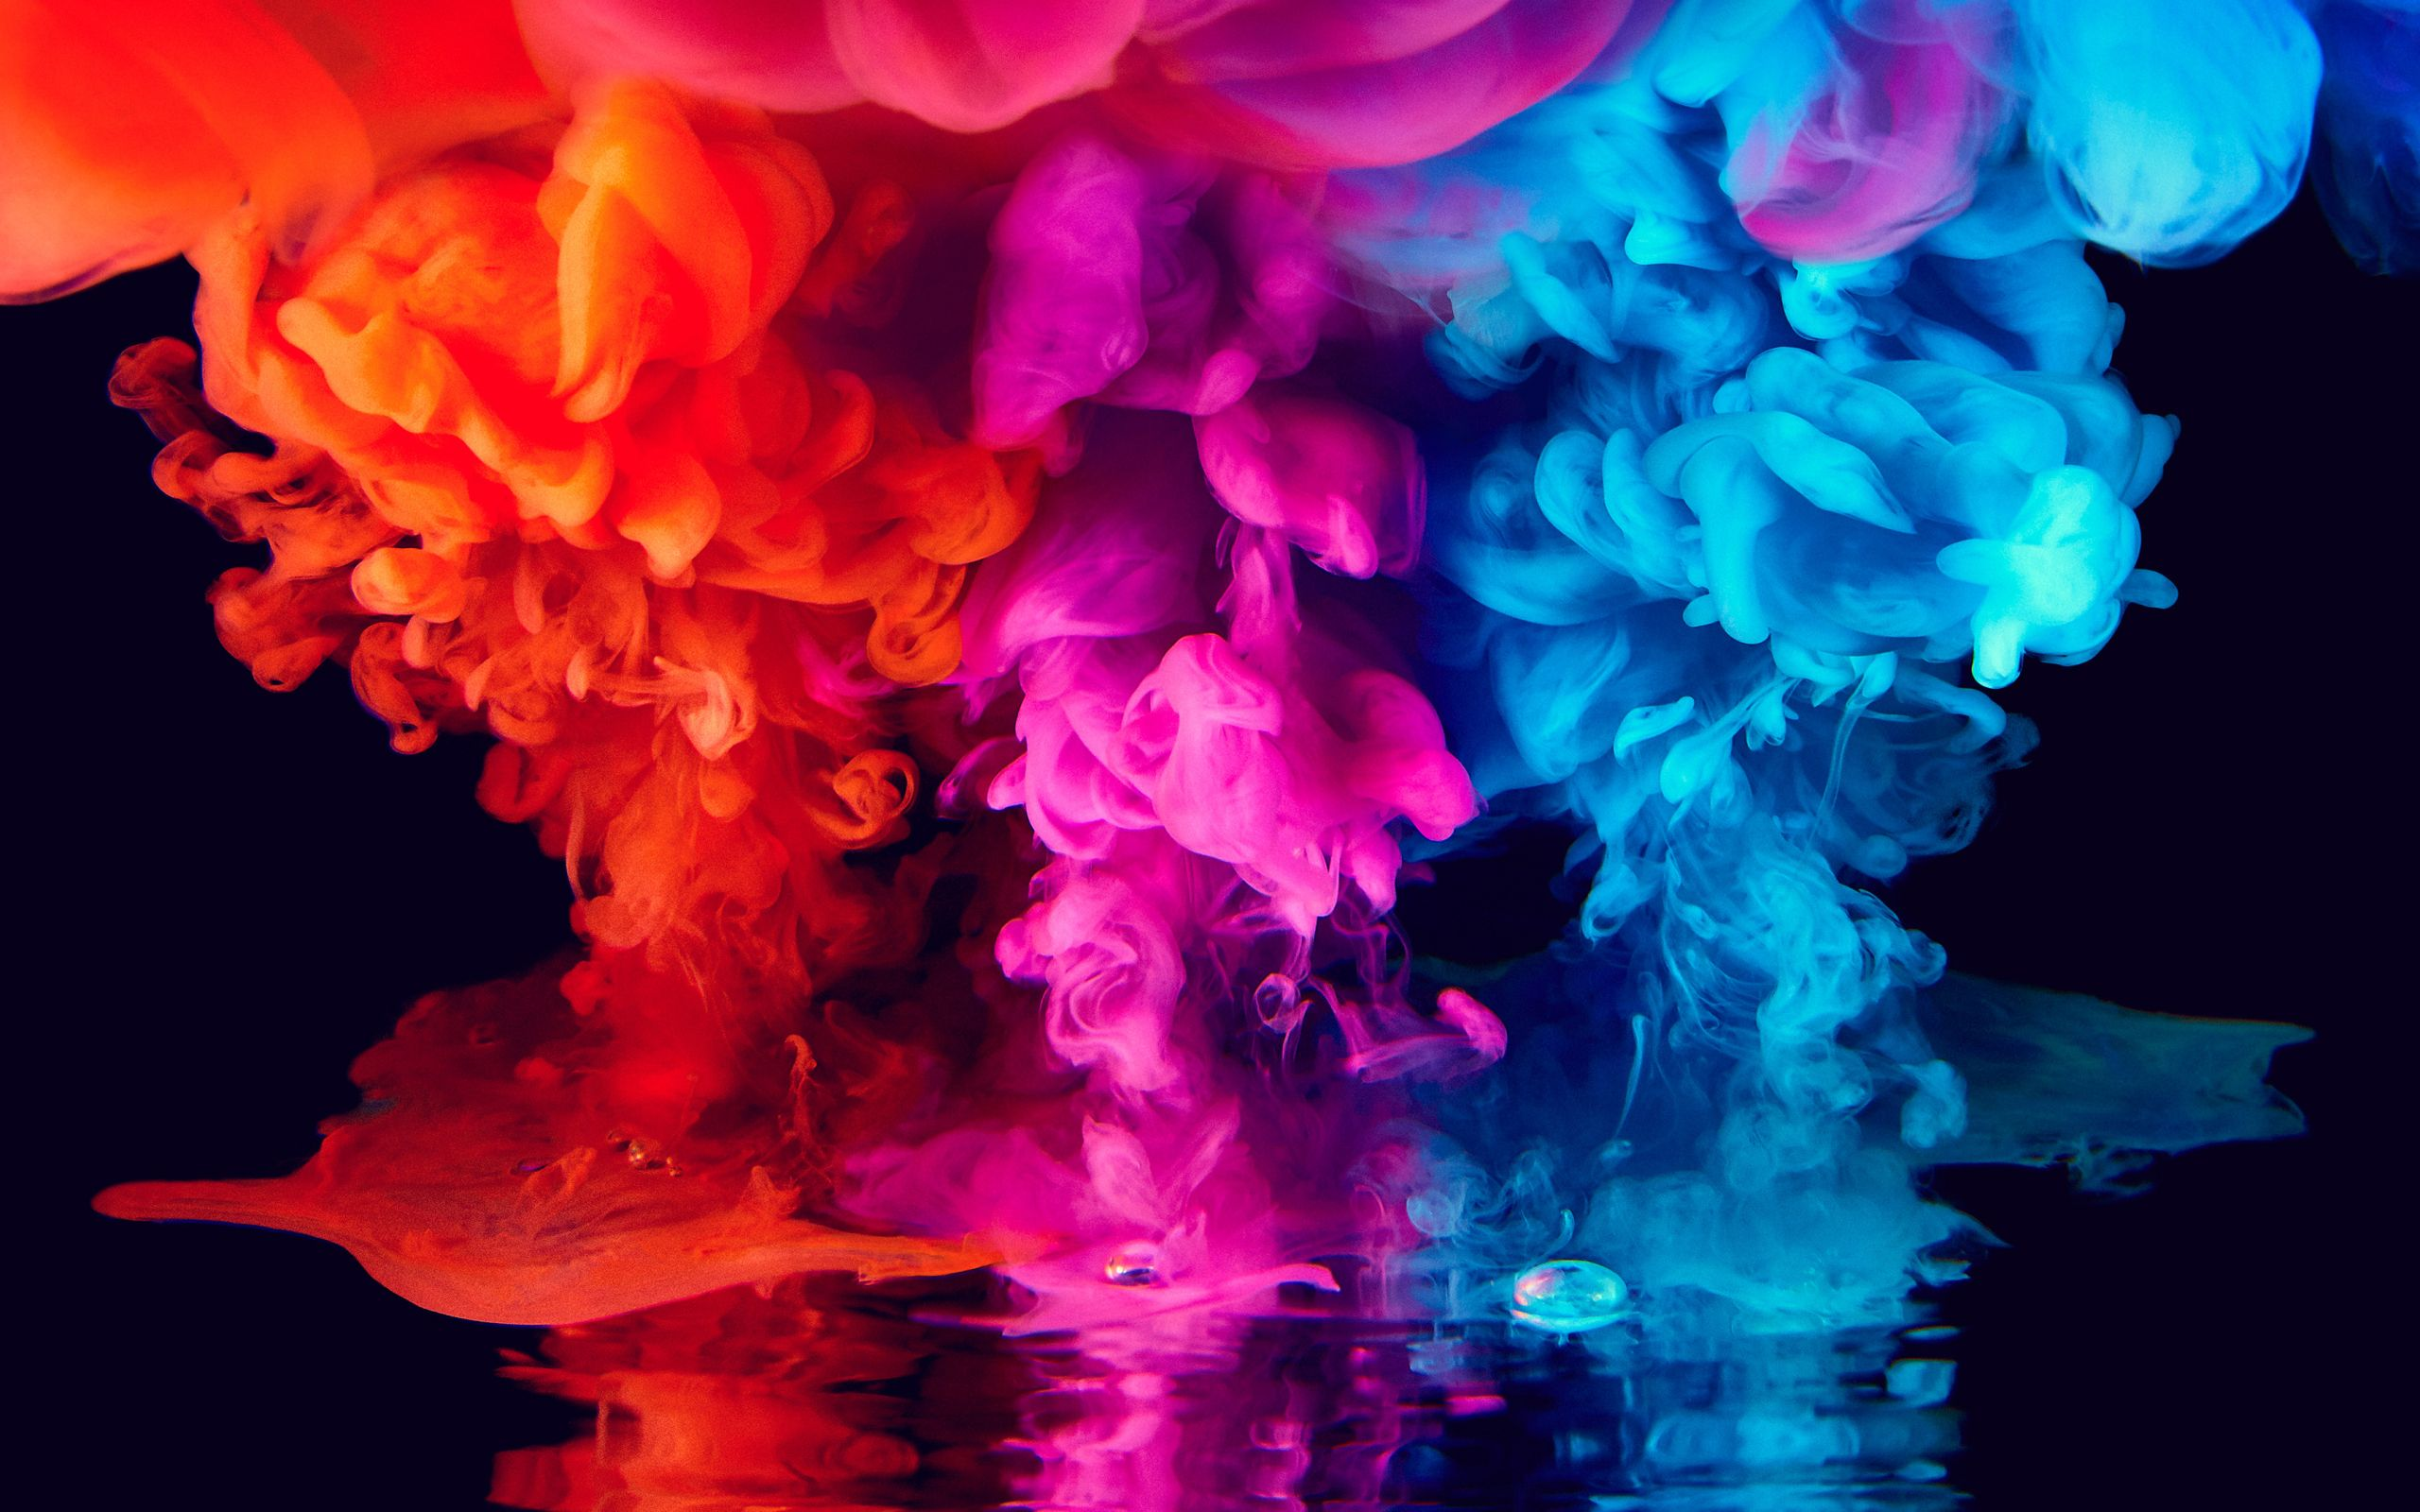 Wallpaper Of Colors Smoke Abstract Background Hd Iphone Smoke Wallpaper 4k 2560x1600 Wallpaper Teahub Io